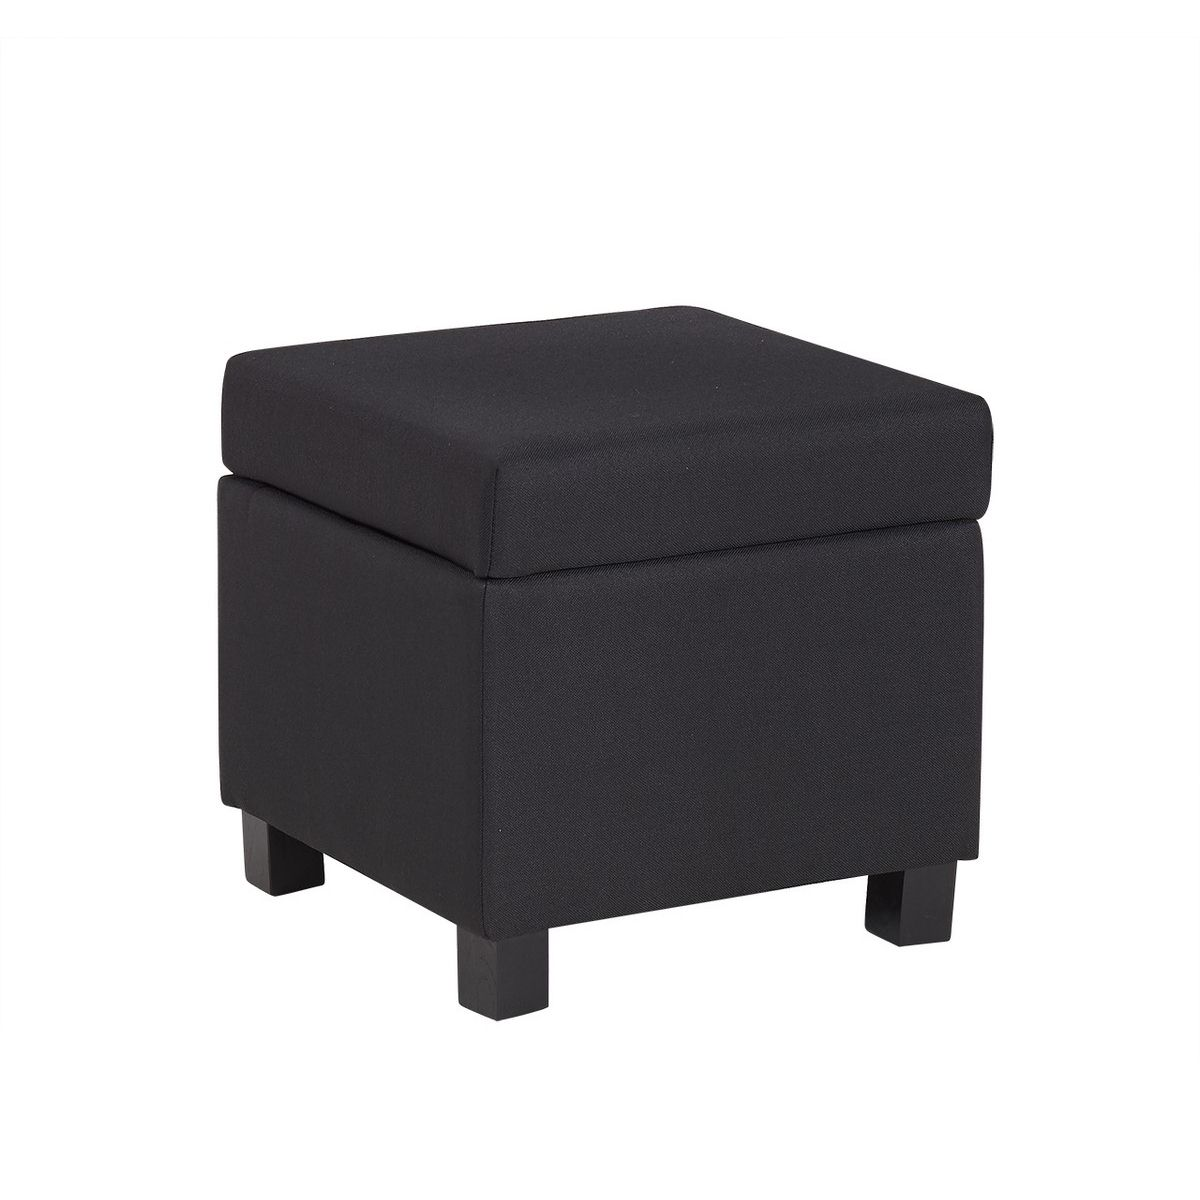 deco in paris 9 pouf coffre de rangement tissu noir pola pola pouf noir. Black Bedroom Furniture Sets. Home Design Ideas